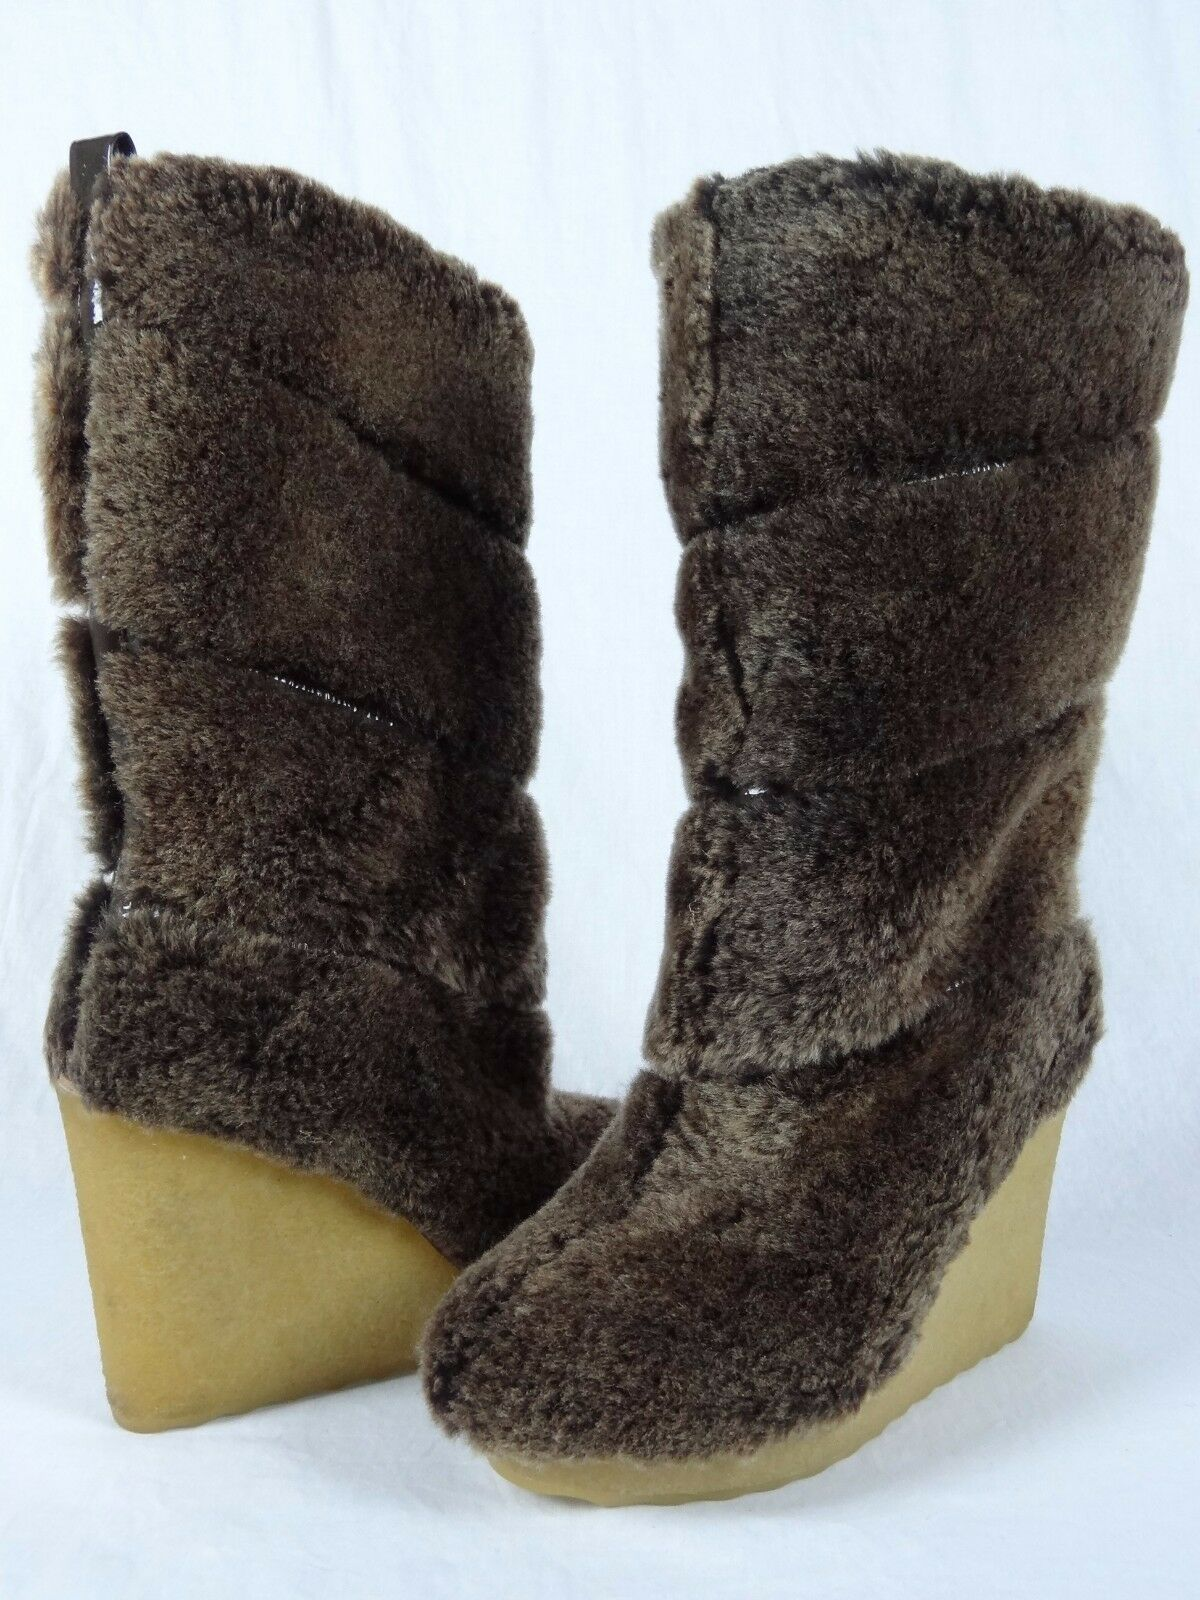 NIB Tory Burch KiKi Wedge Boots Shearling Coconut 298 sz 8 Brown Fur